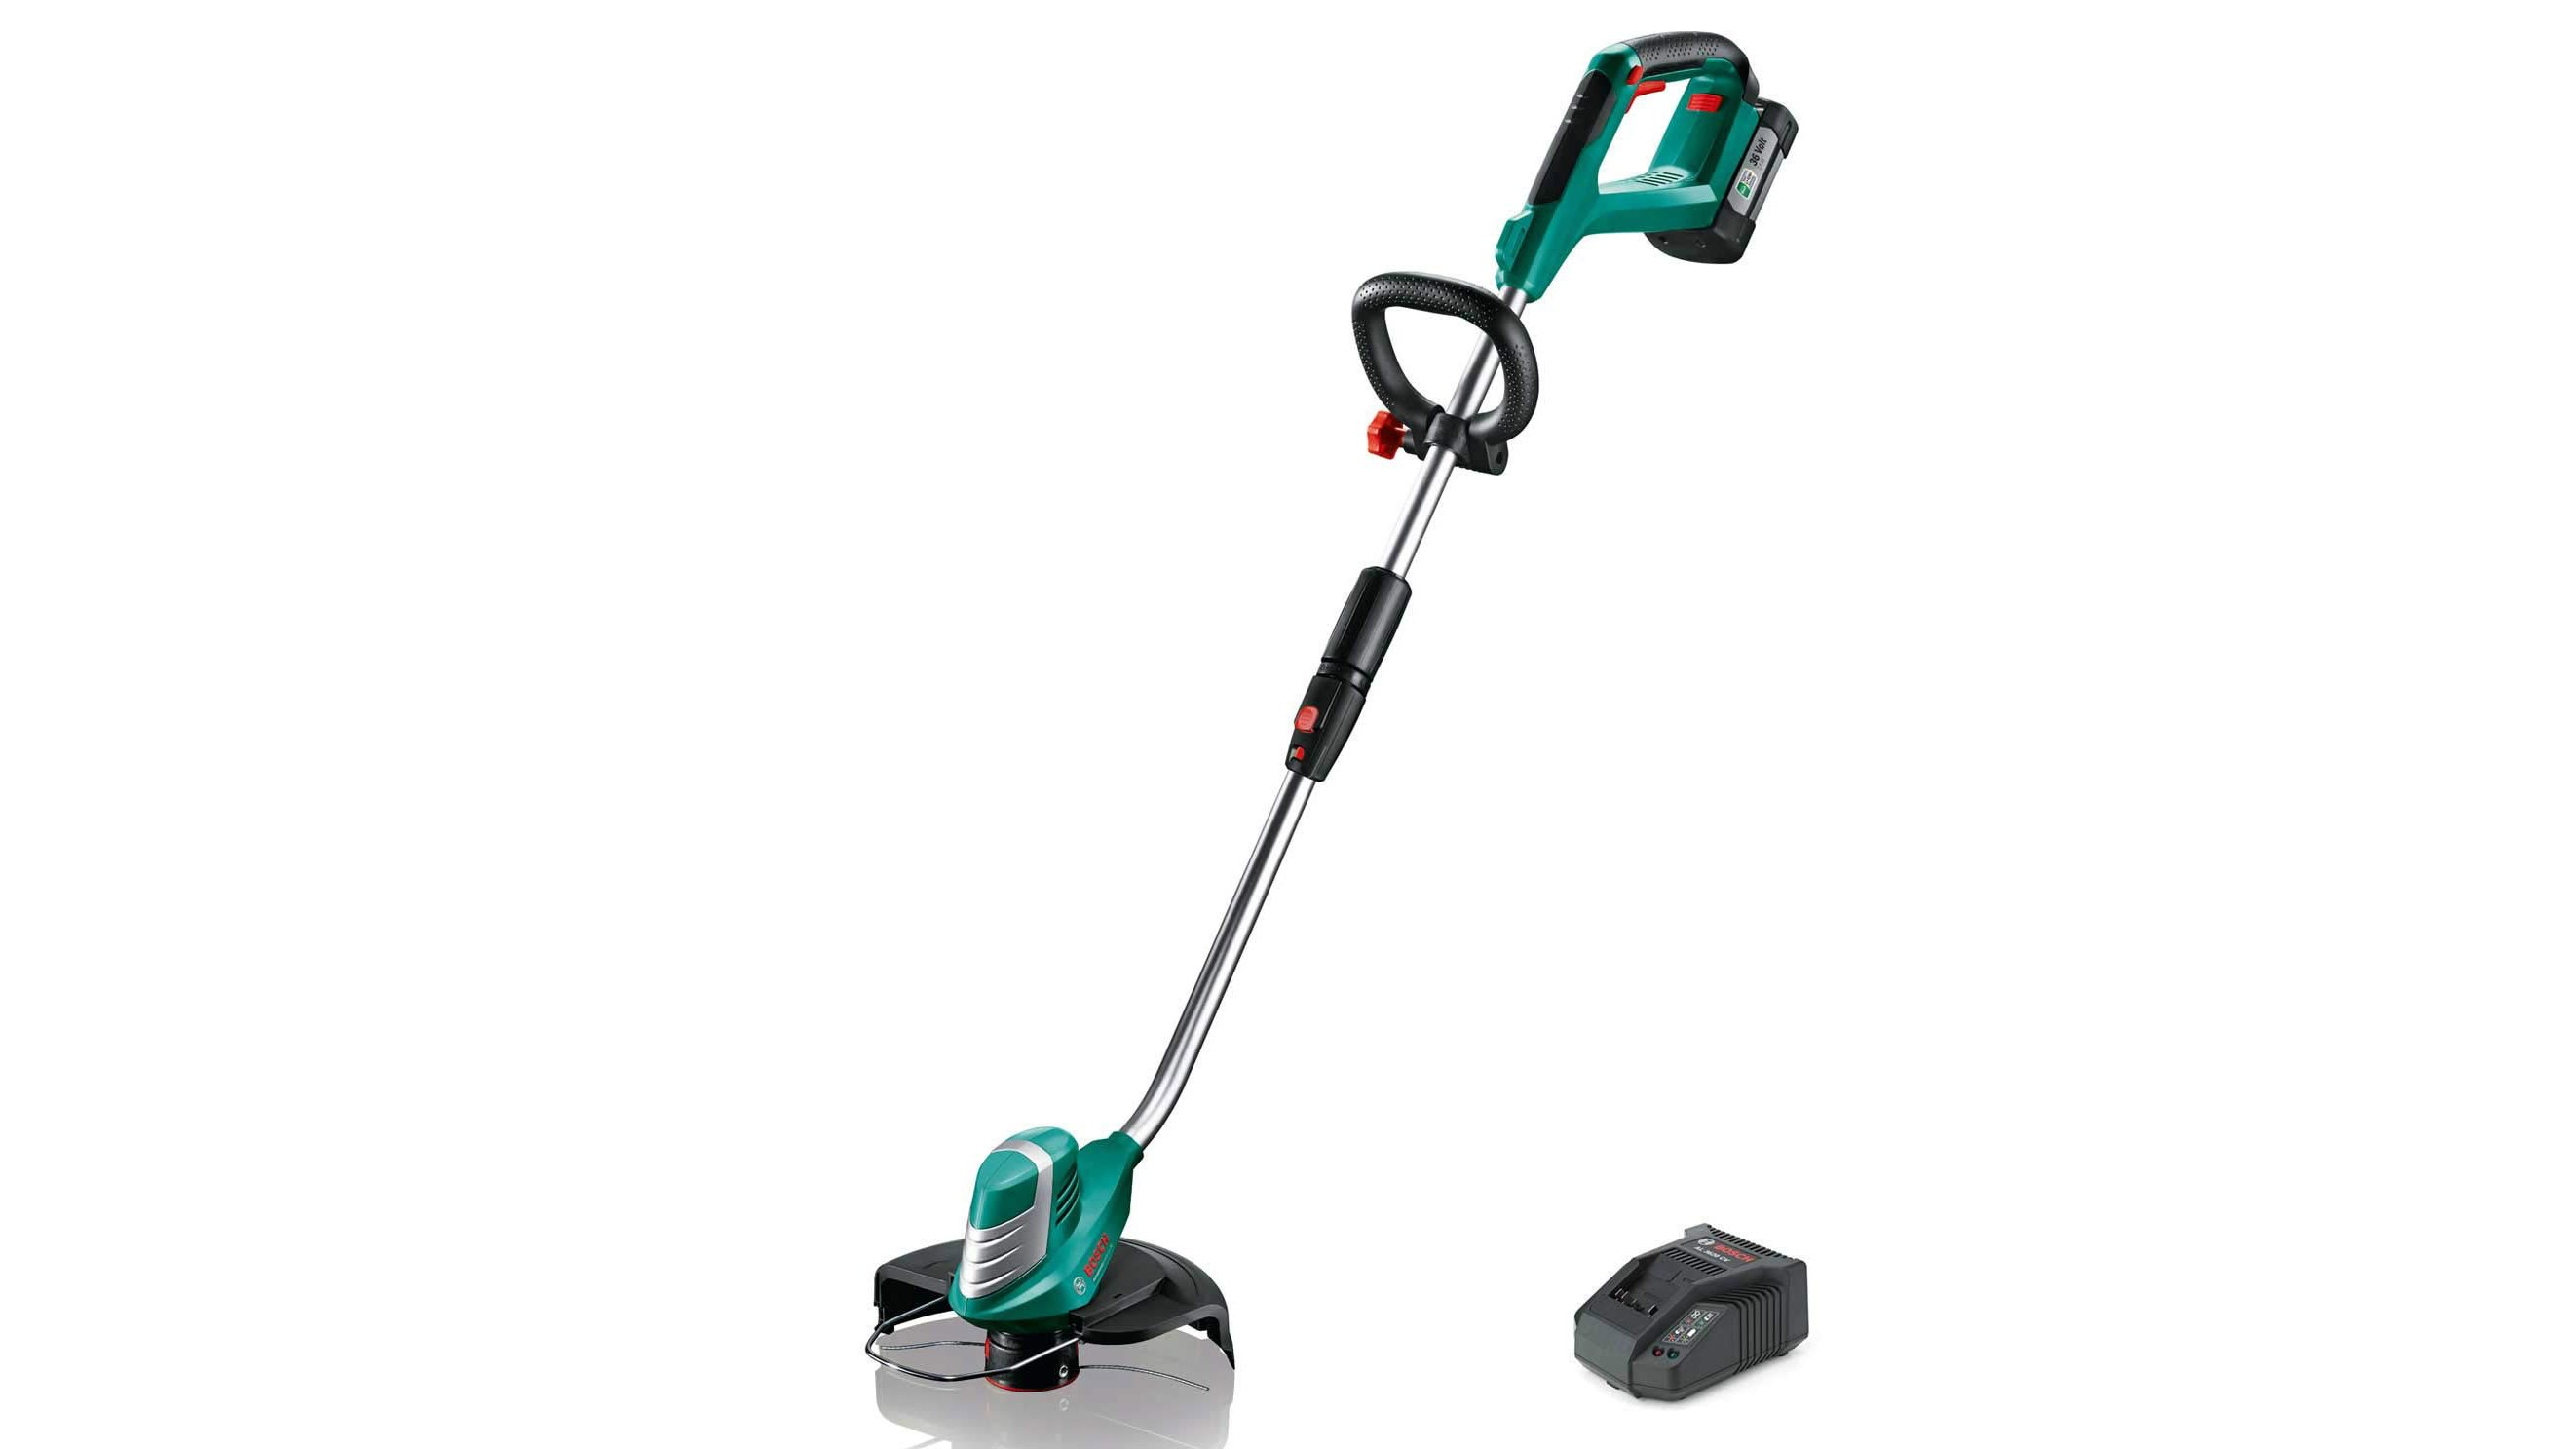 Flymo Contour XT 18v Cordless Strimmer Trimmer Replacement Spool /& Line